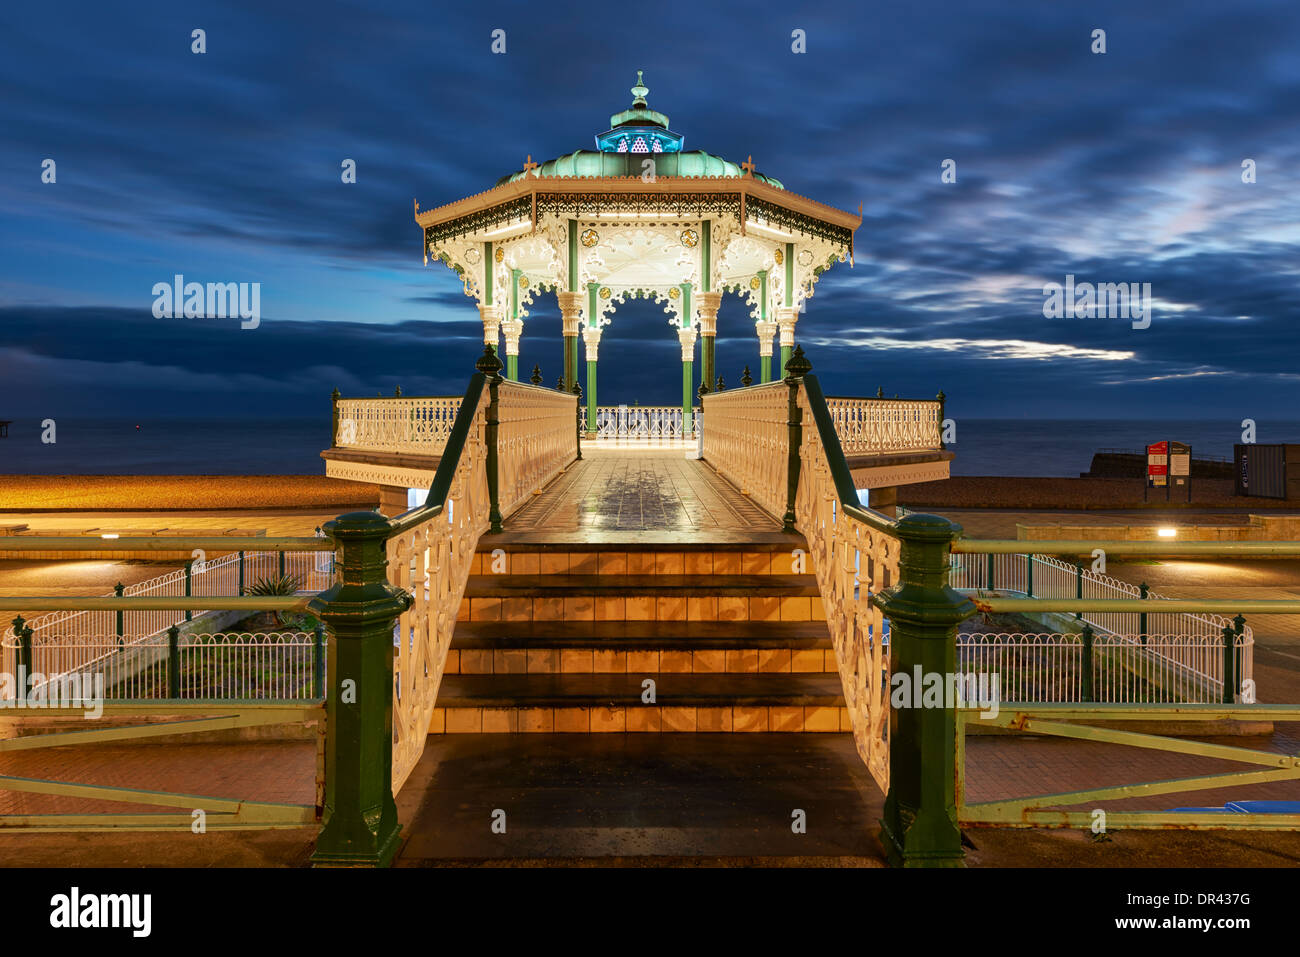 Brighton bandstand illuminated at twilight - Stock Image